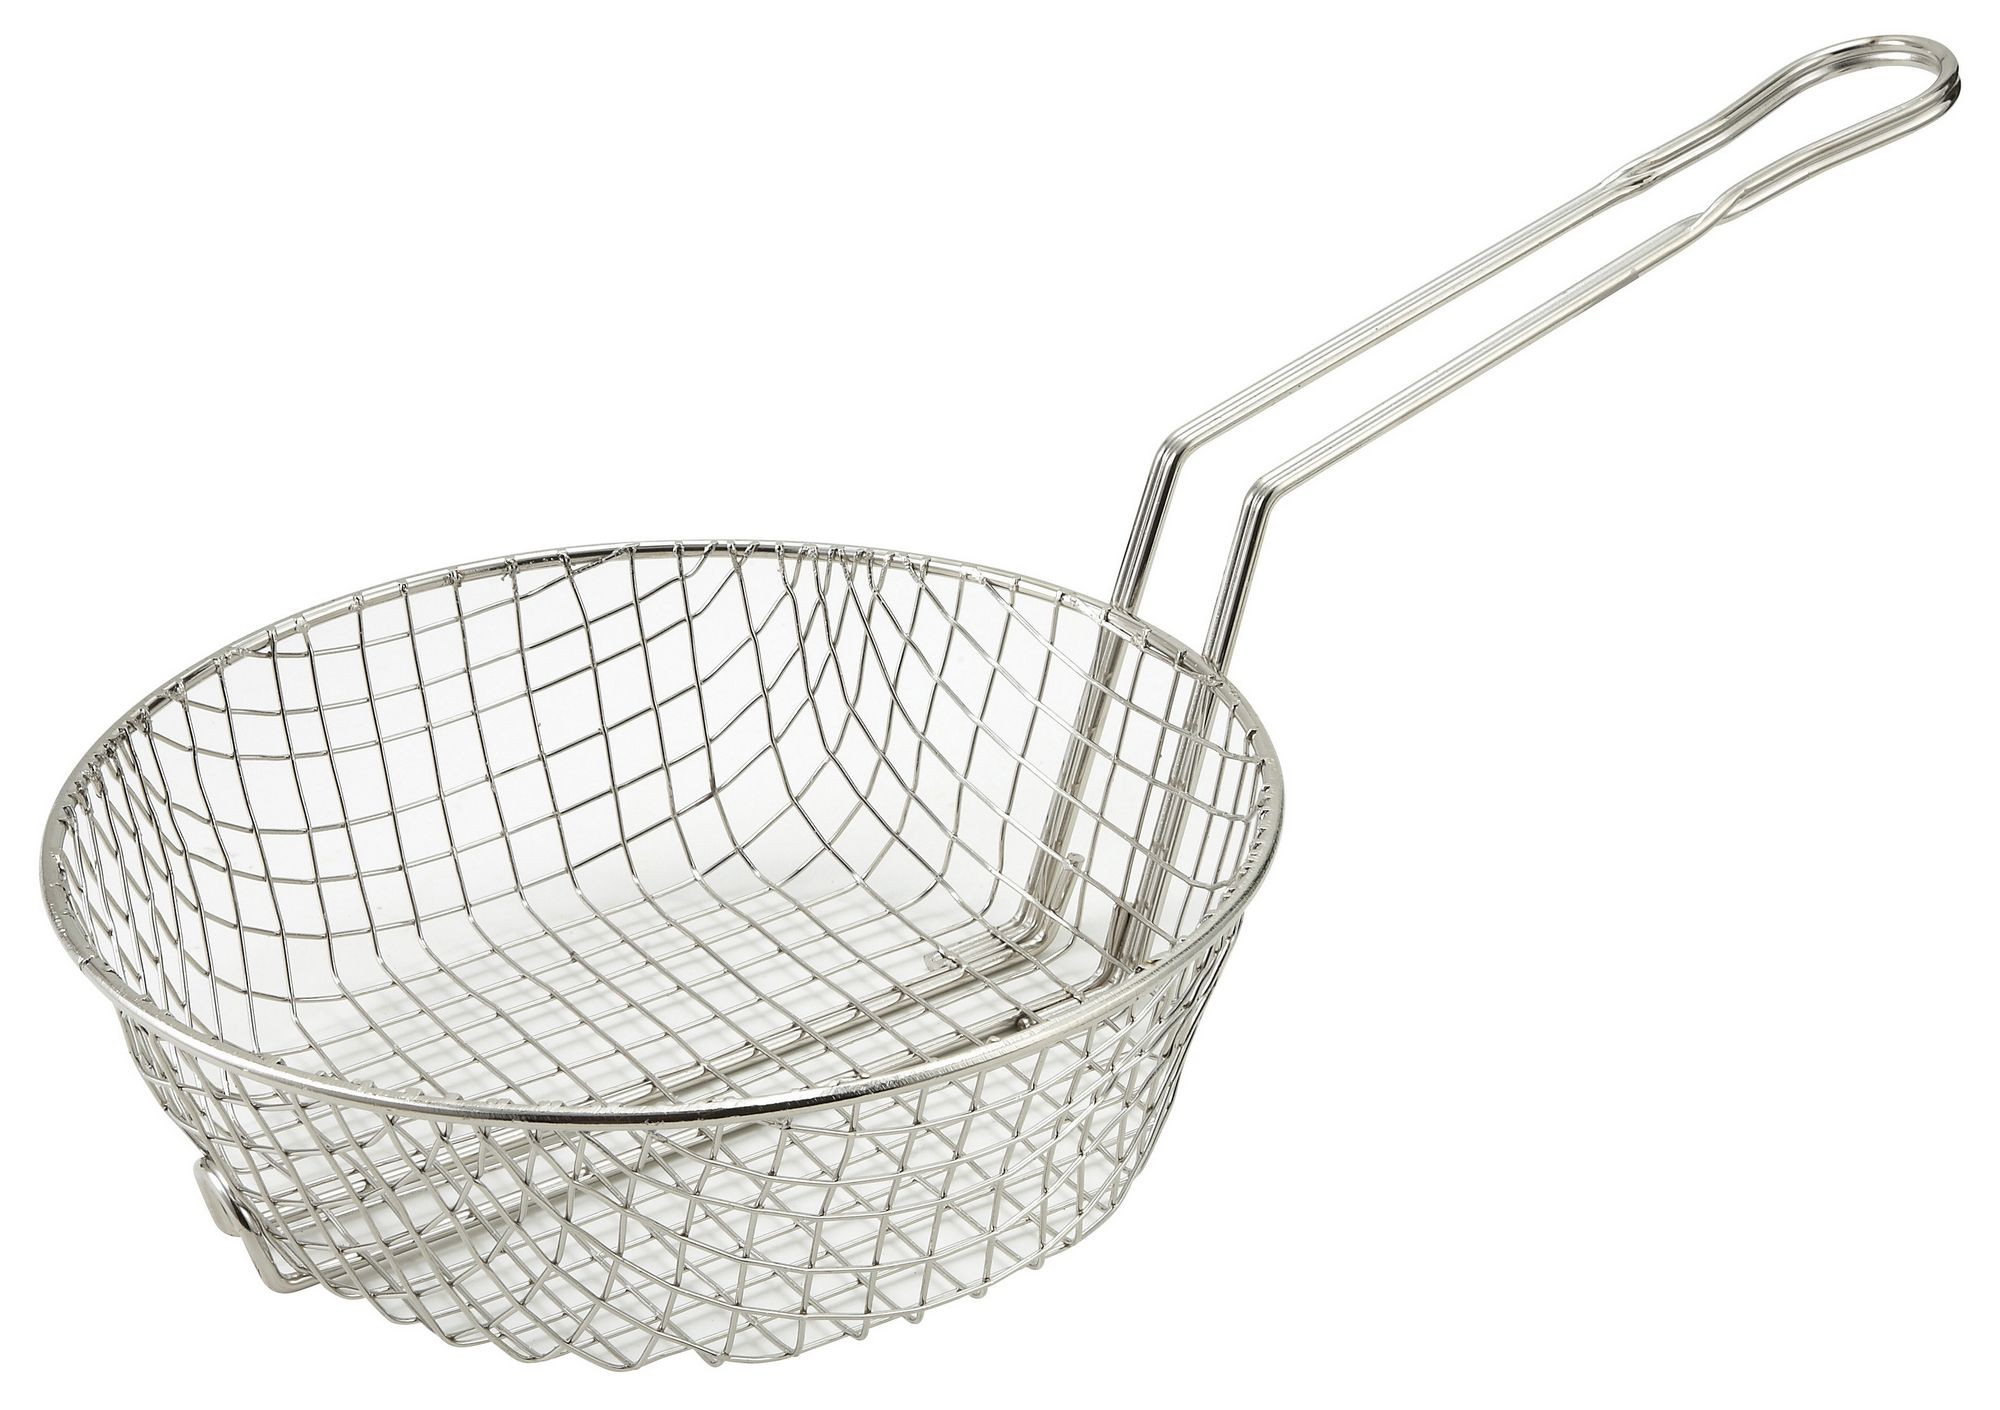 Coarse Mesh Culinary Basket - 10